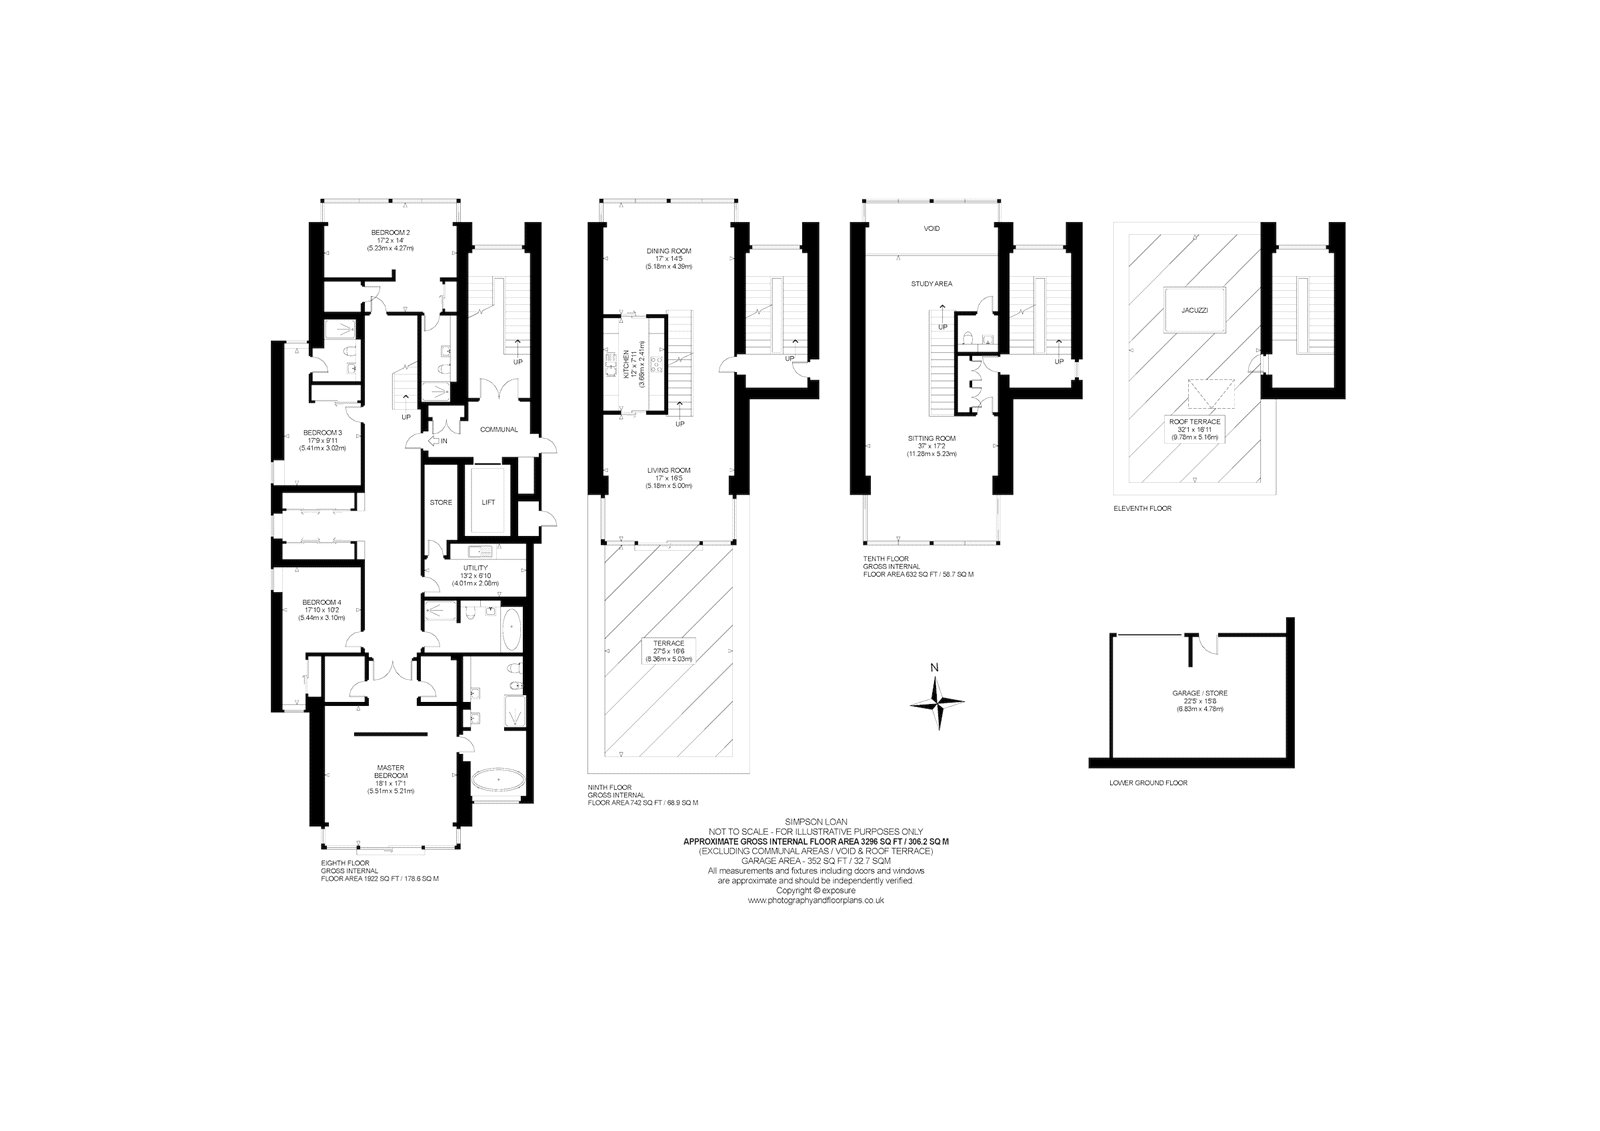 Floorplans for Simpson Loan, Edinburgh, Midlothian, EH3